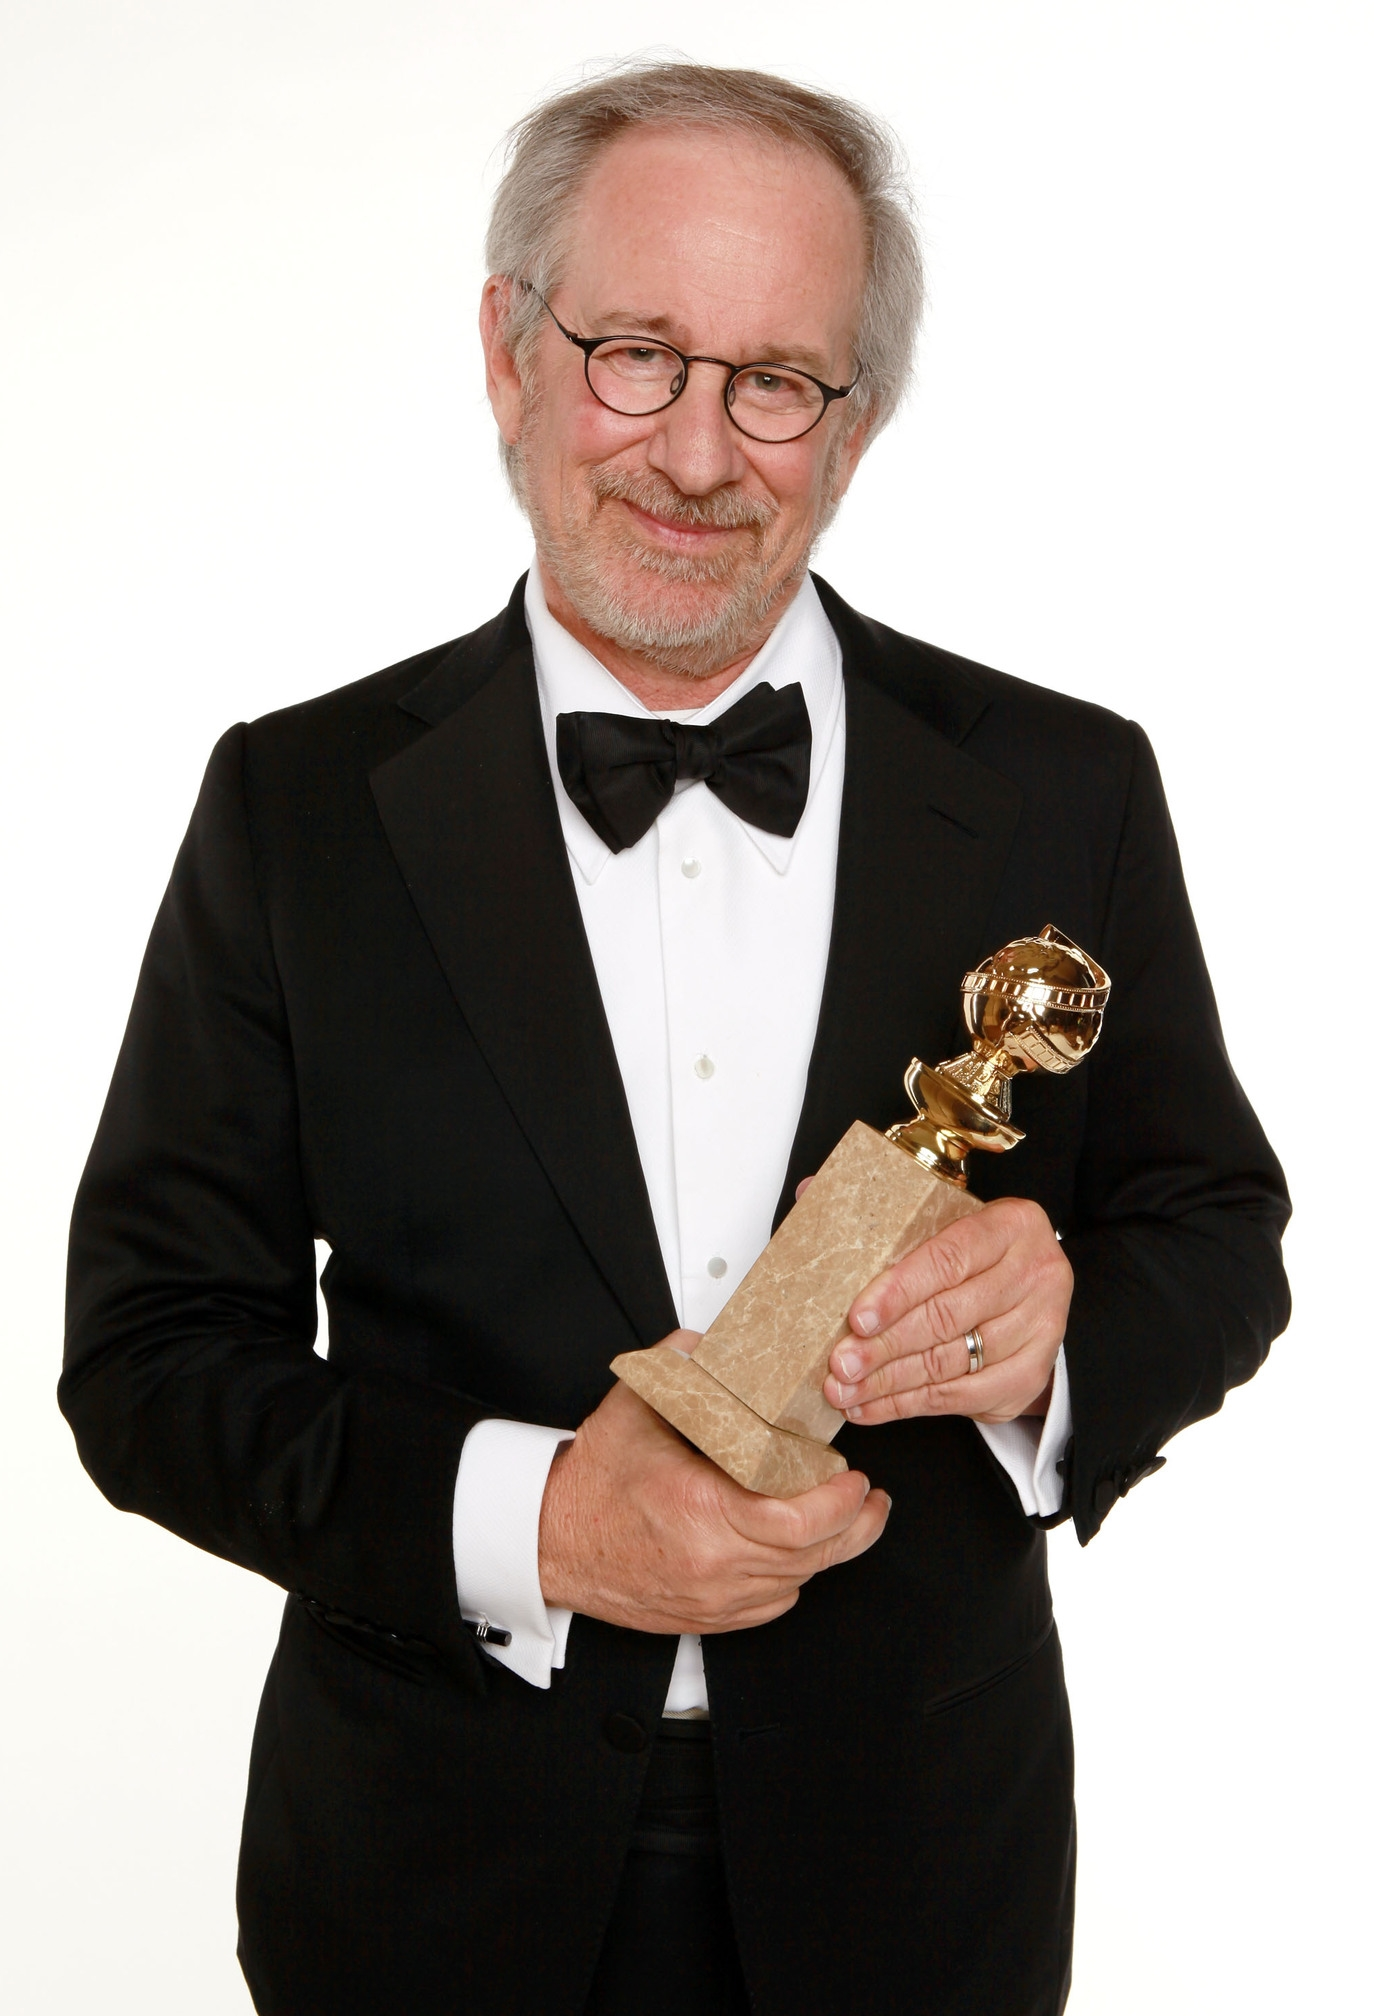 Steven Spielberg with cufflinks